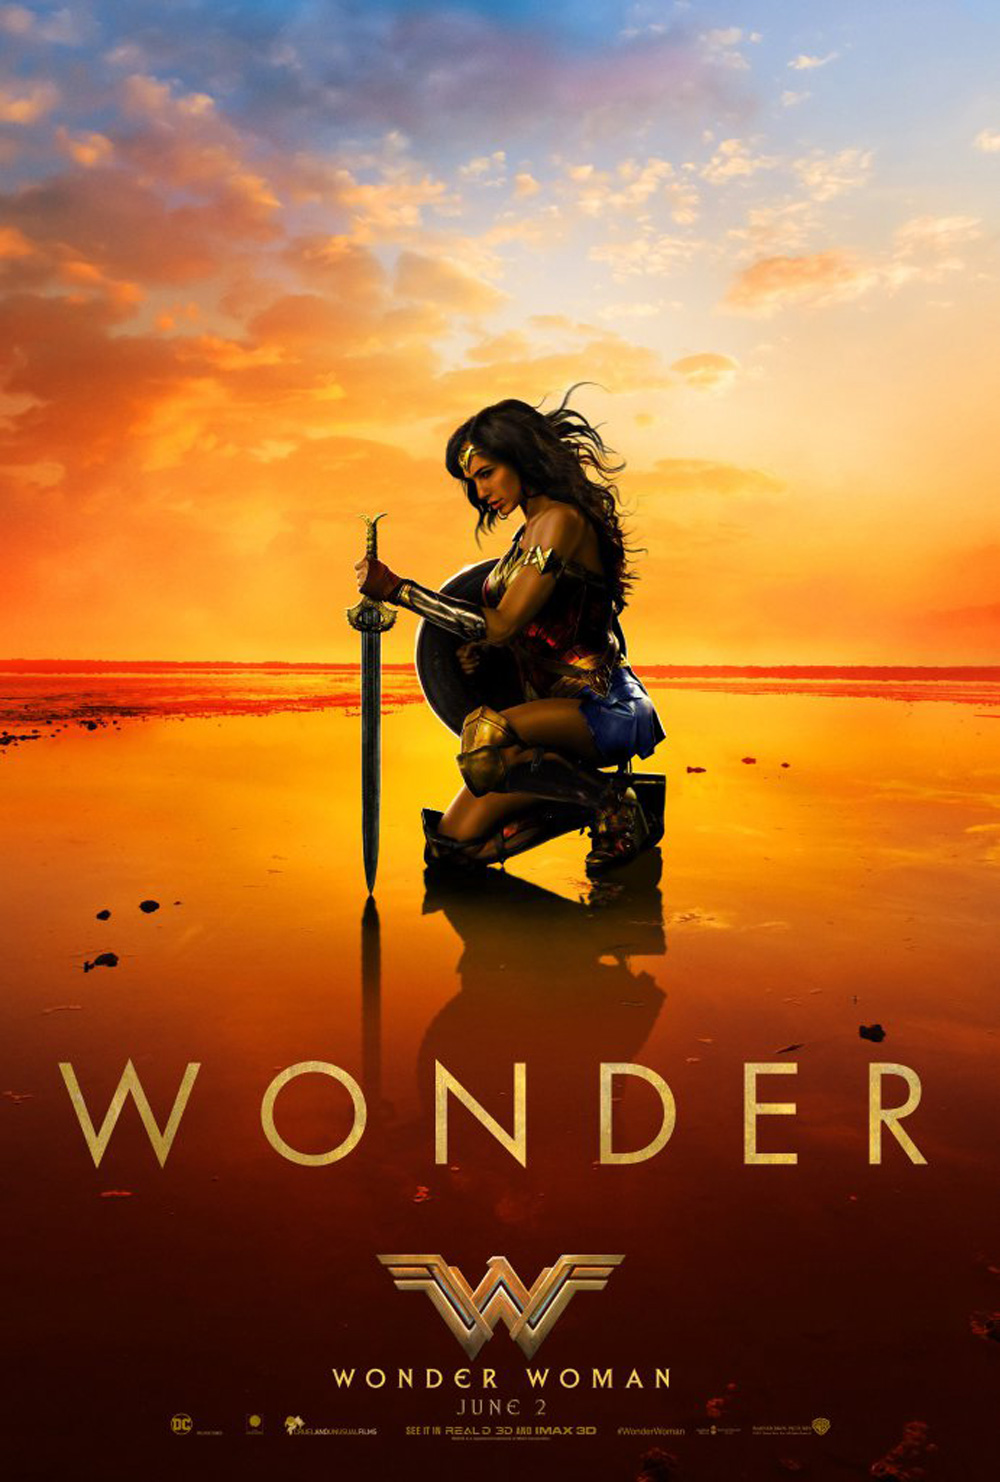 wonder-woman-2017-visual-atelier-8-12.jpg